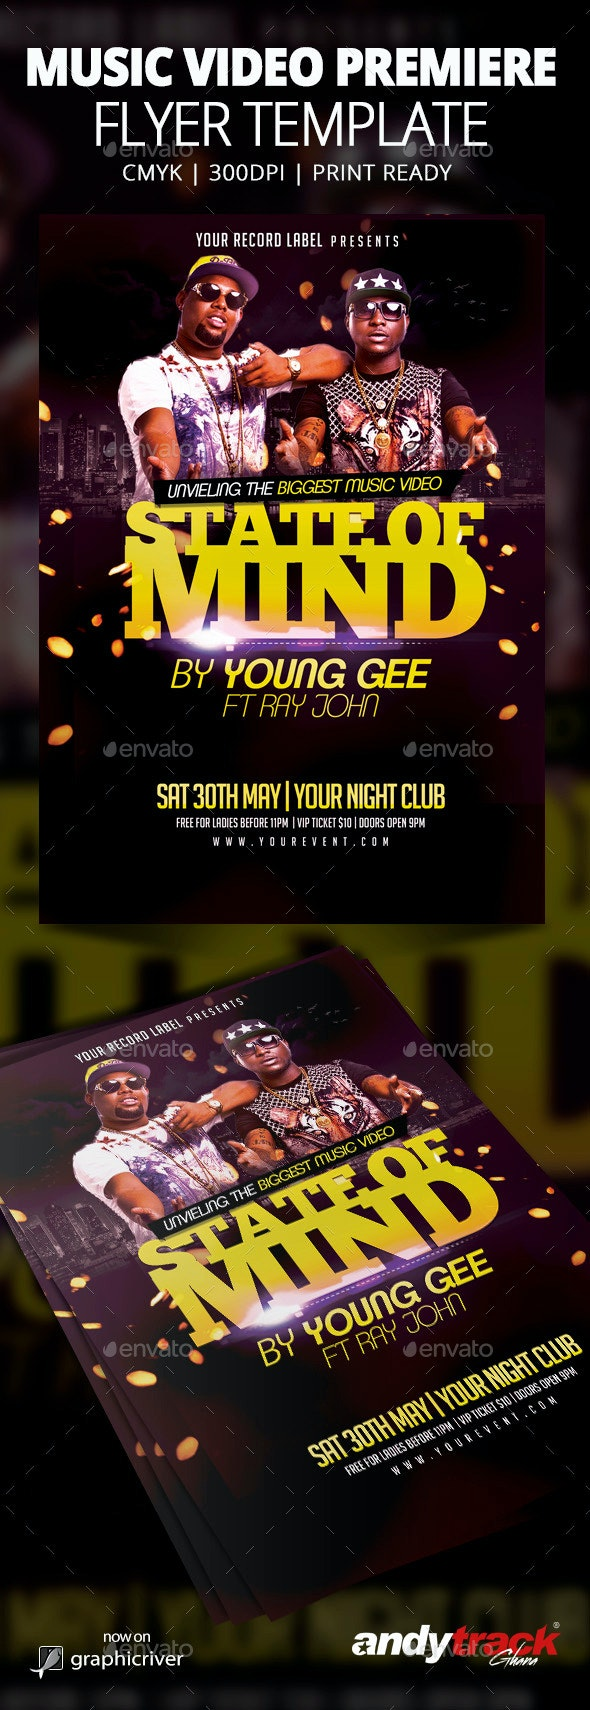 Music Video Premiere Flyer Template